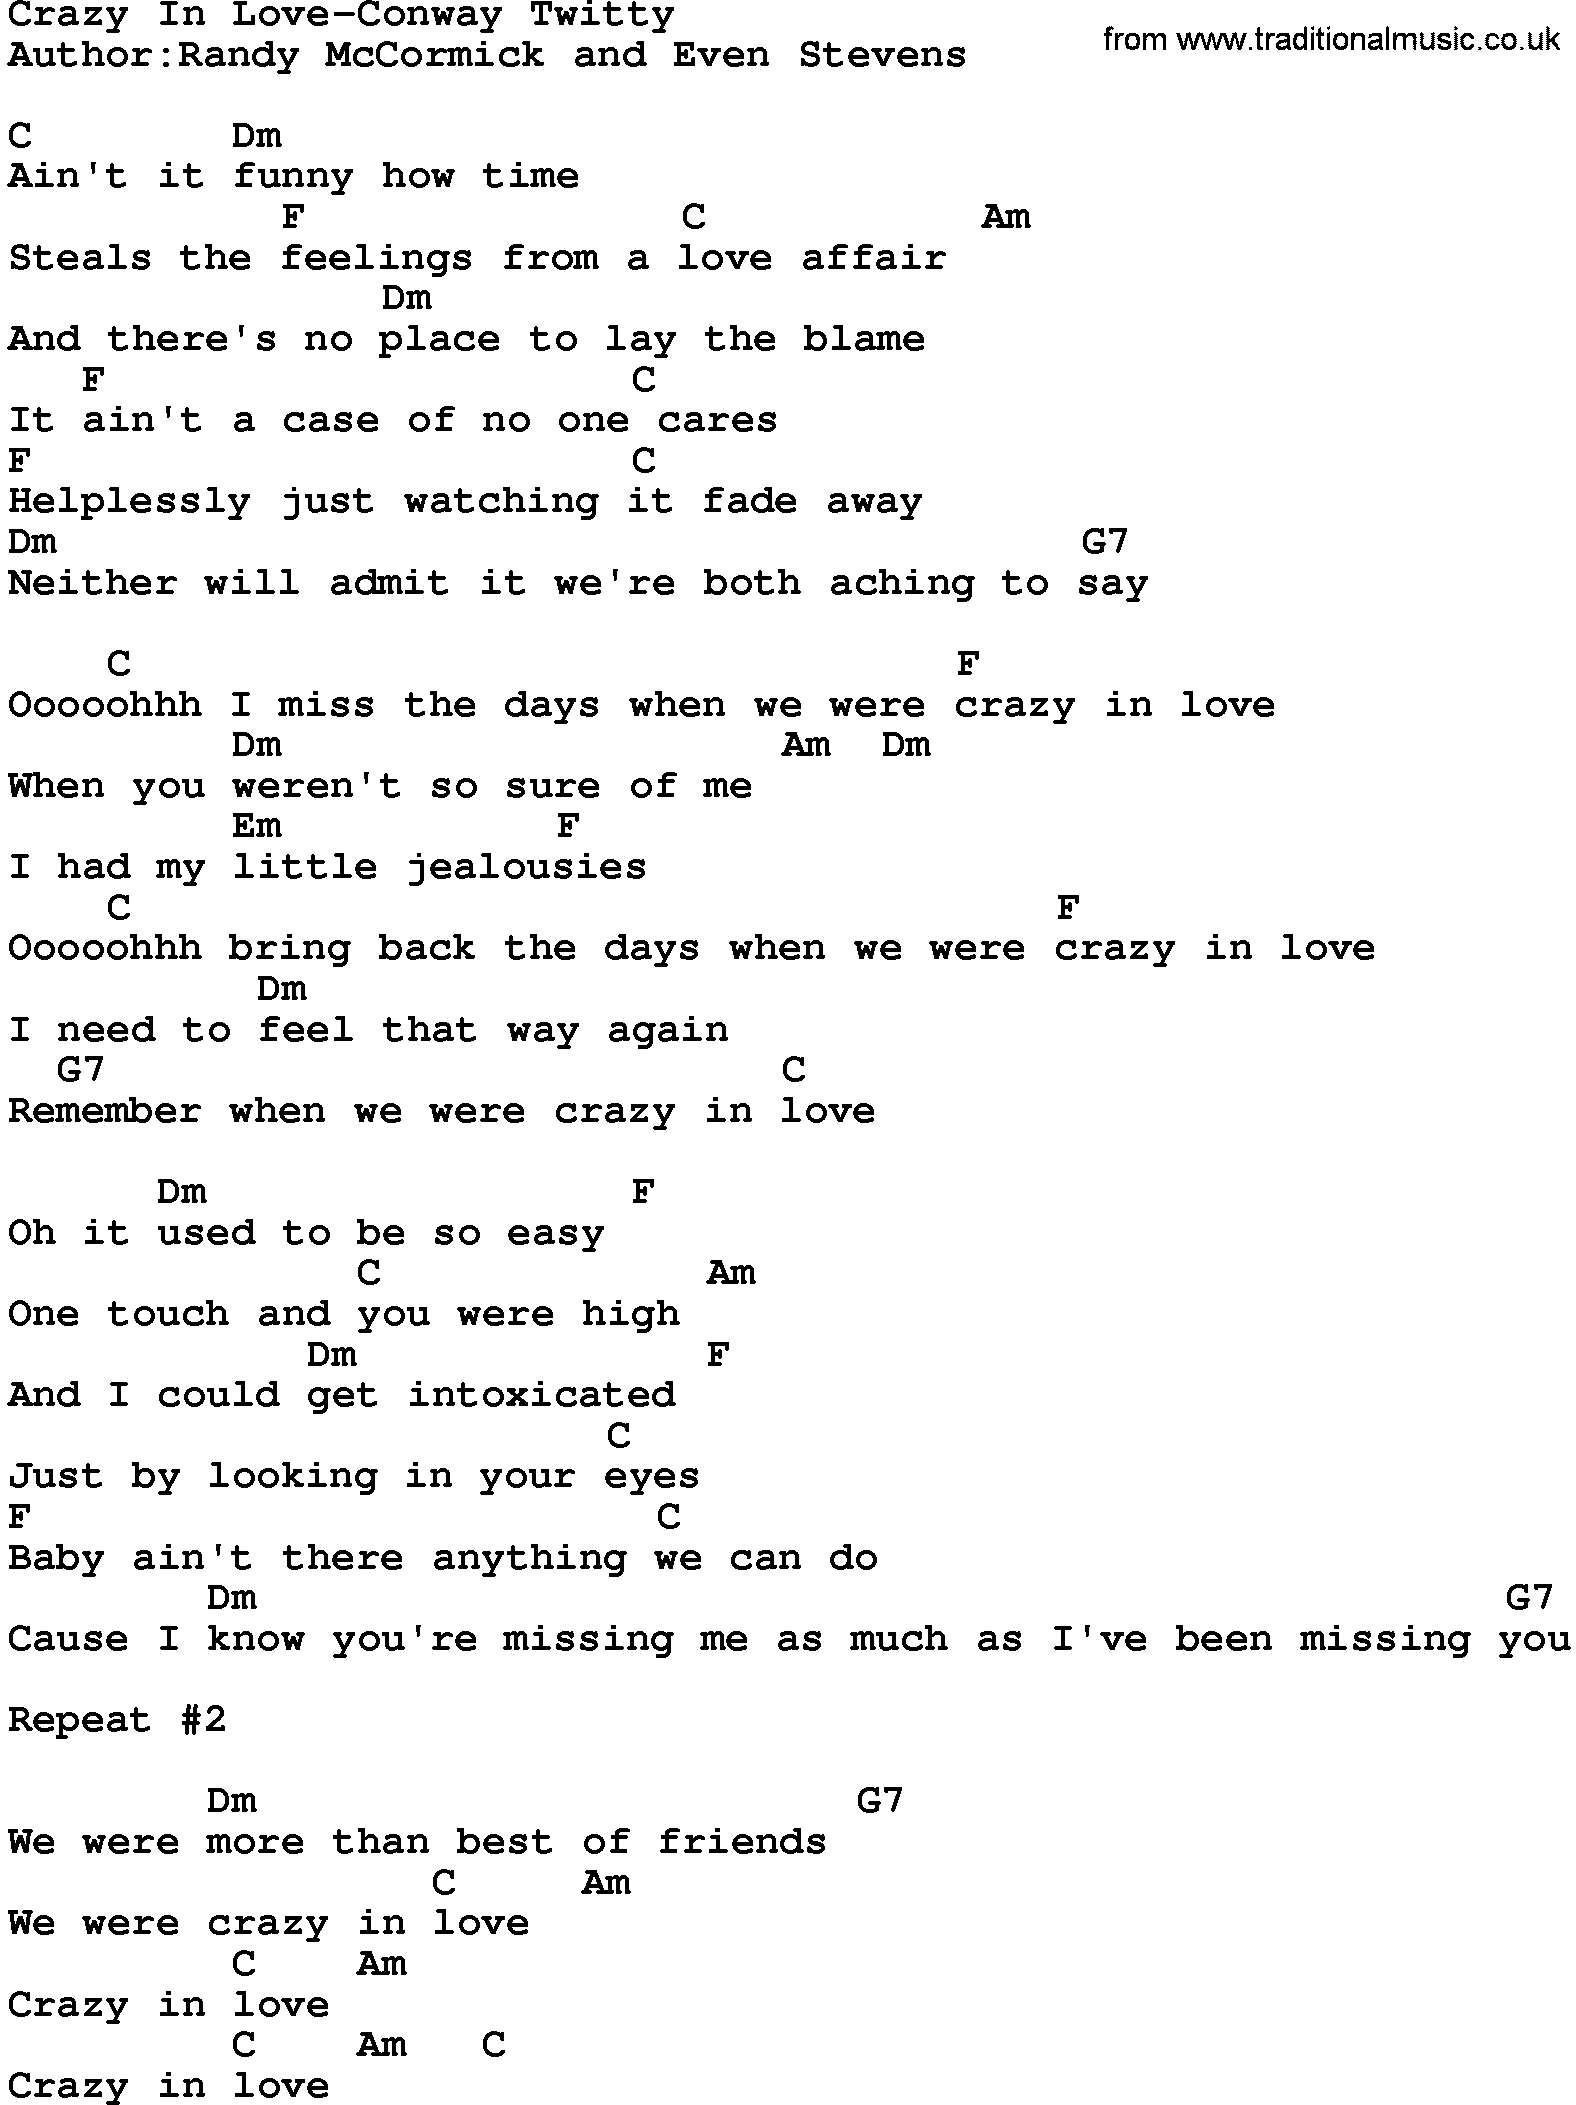 Country musiccrazy in love conway twitty lyrics and chords hexwebz Choice Image